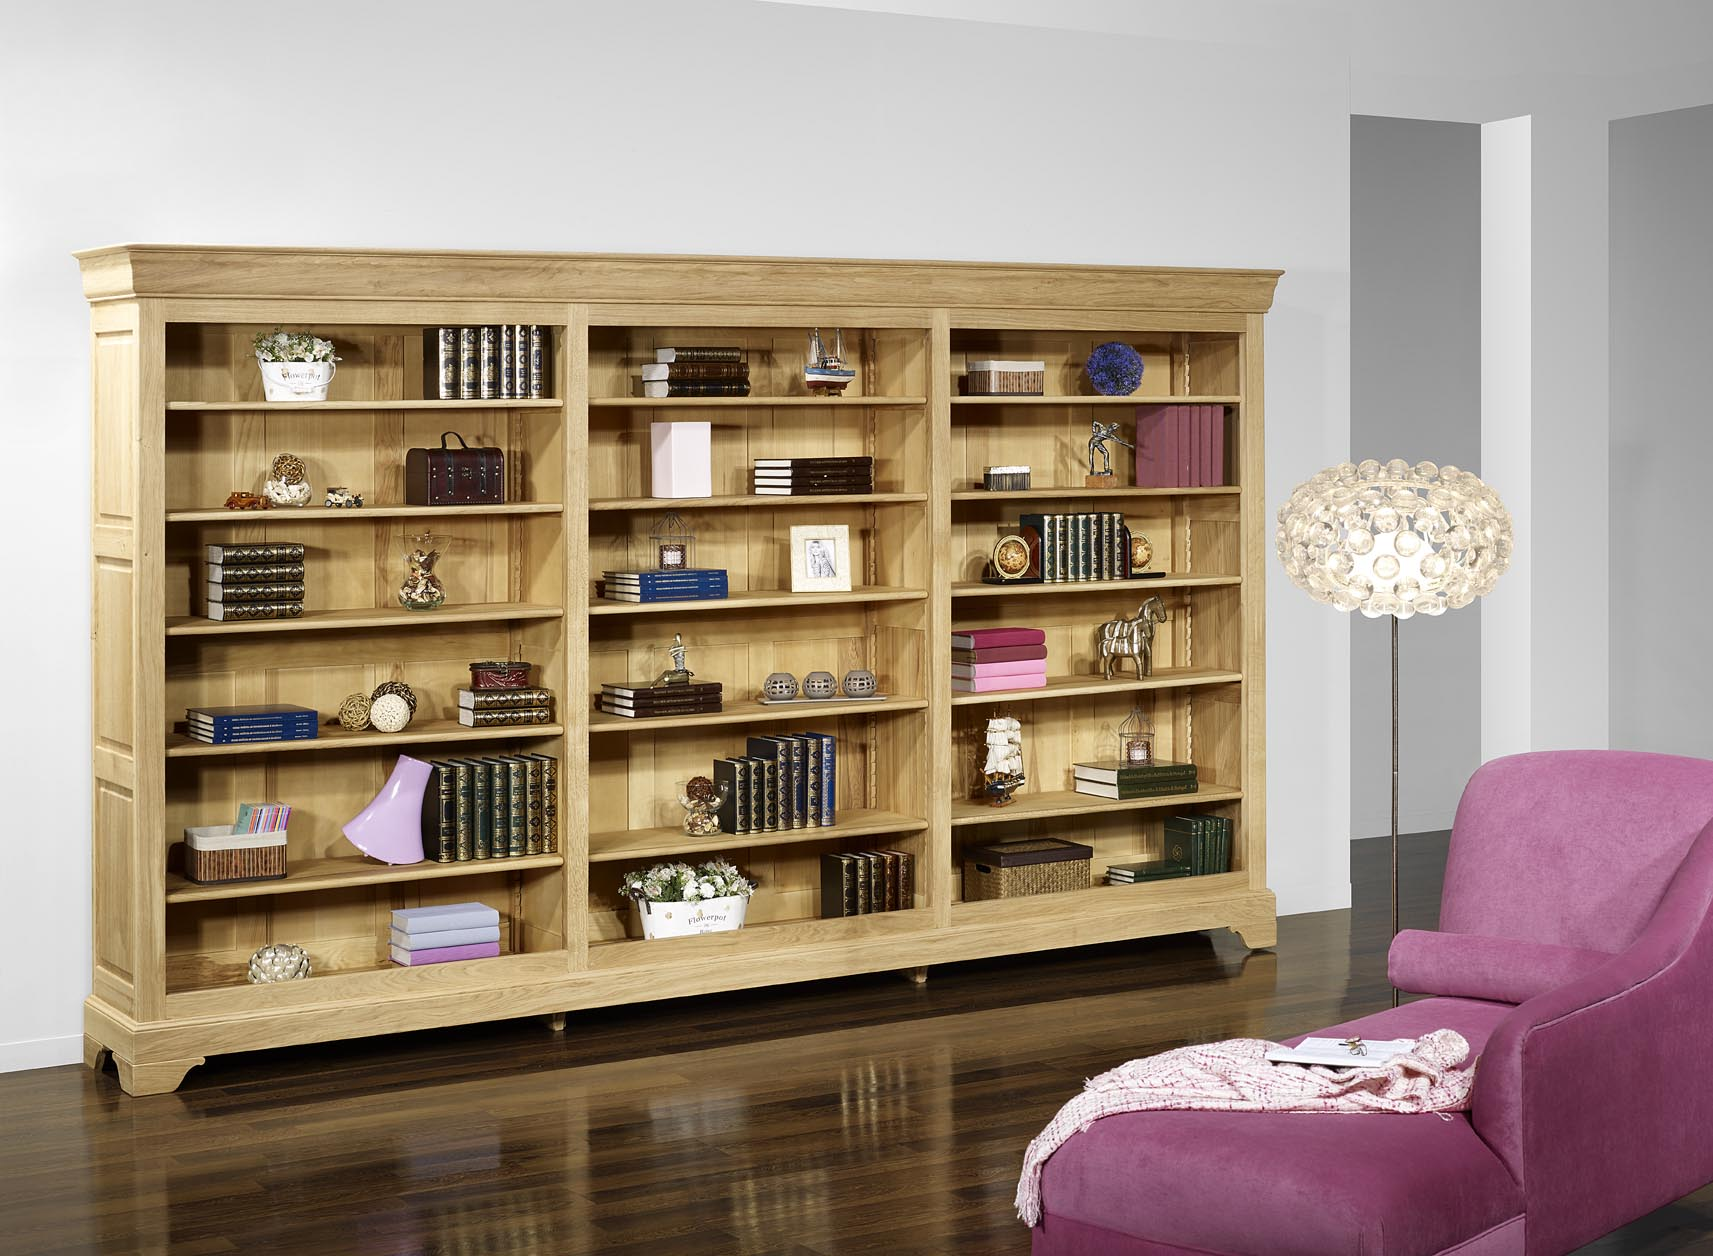 biblioth que simon en ch ne massif de style louis philippe longueur 360 cm meuble en ch ne massif. Black Bedroom Furniture Sets. Home Design Ideas